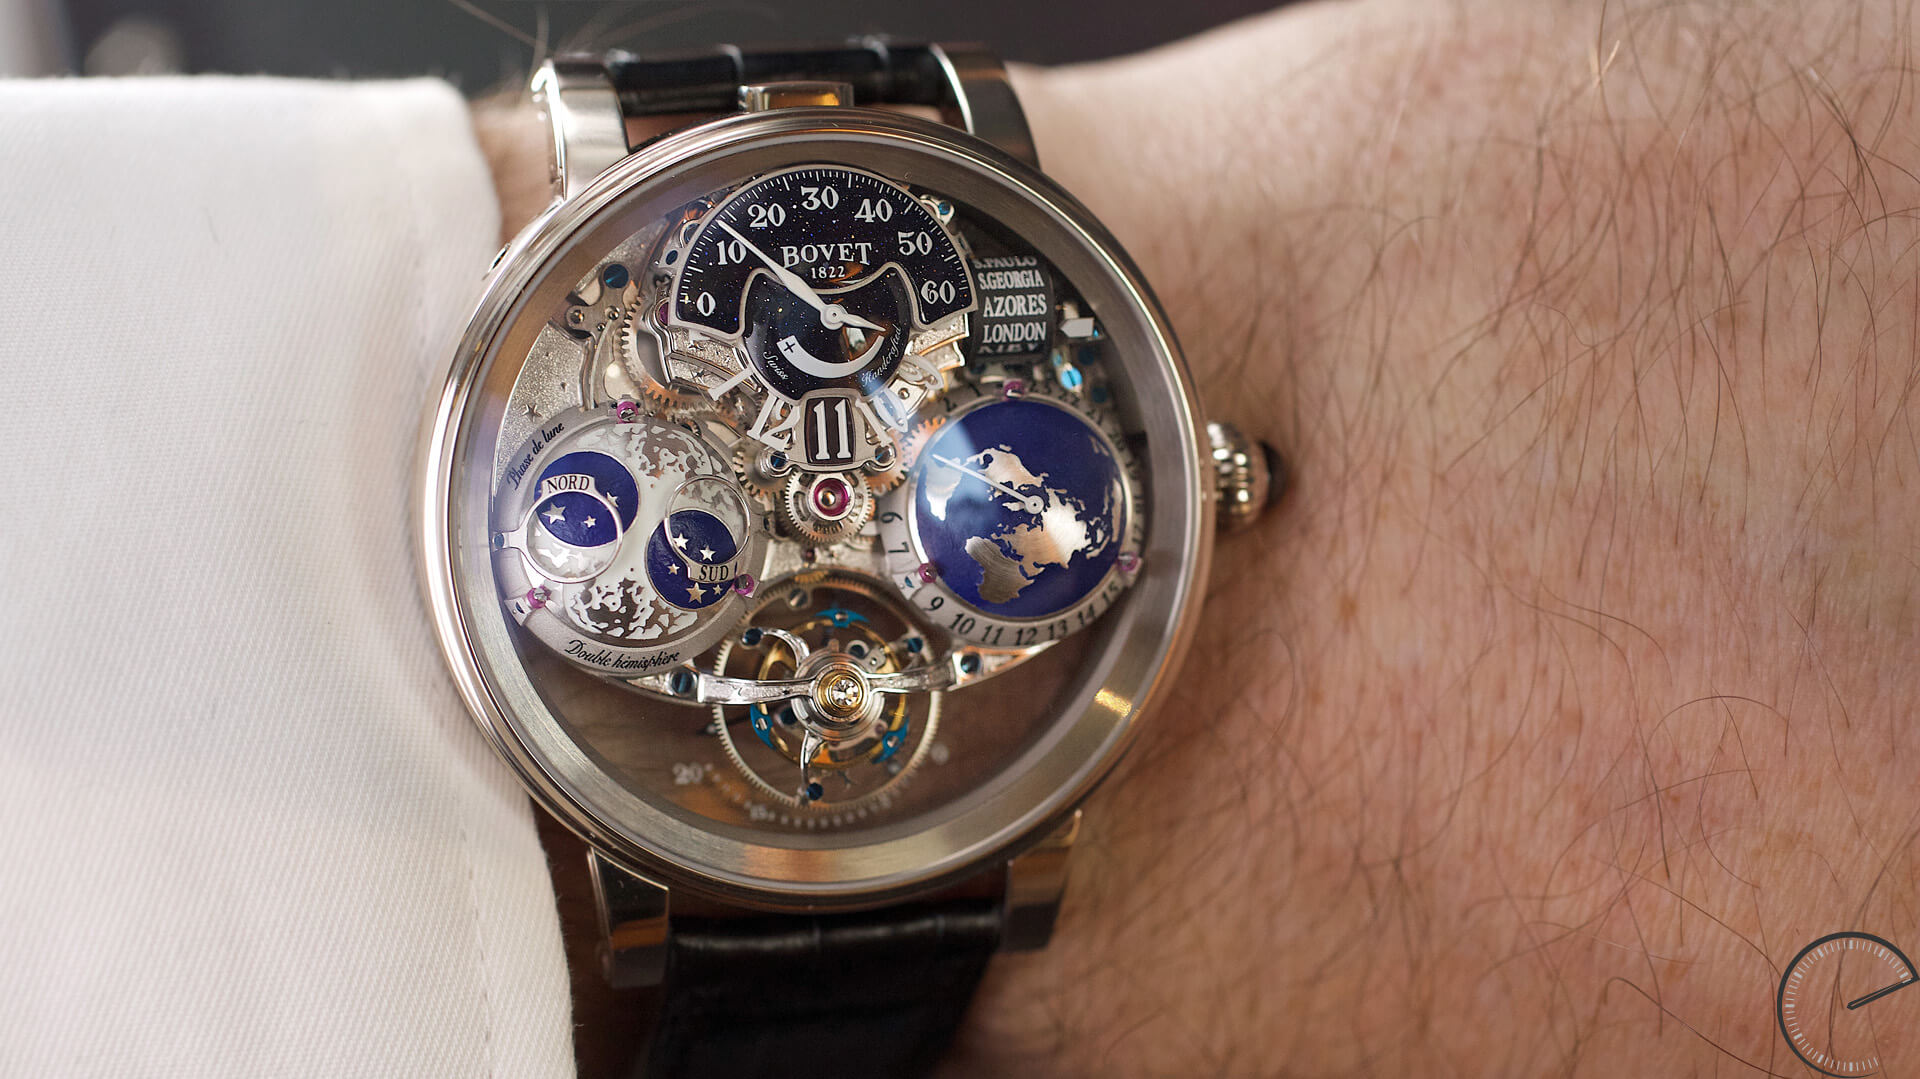 bovet ast recital view cital r time rium office front orr asterium ld watches transformed